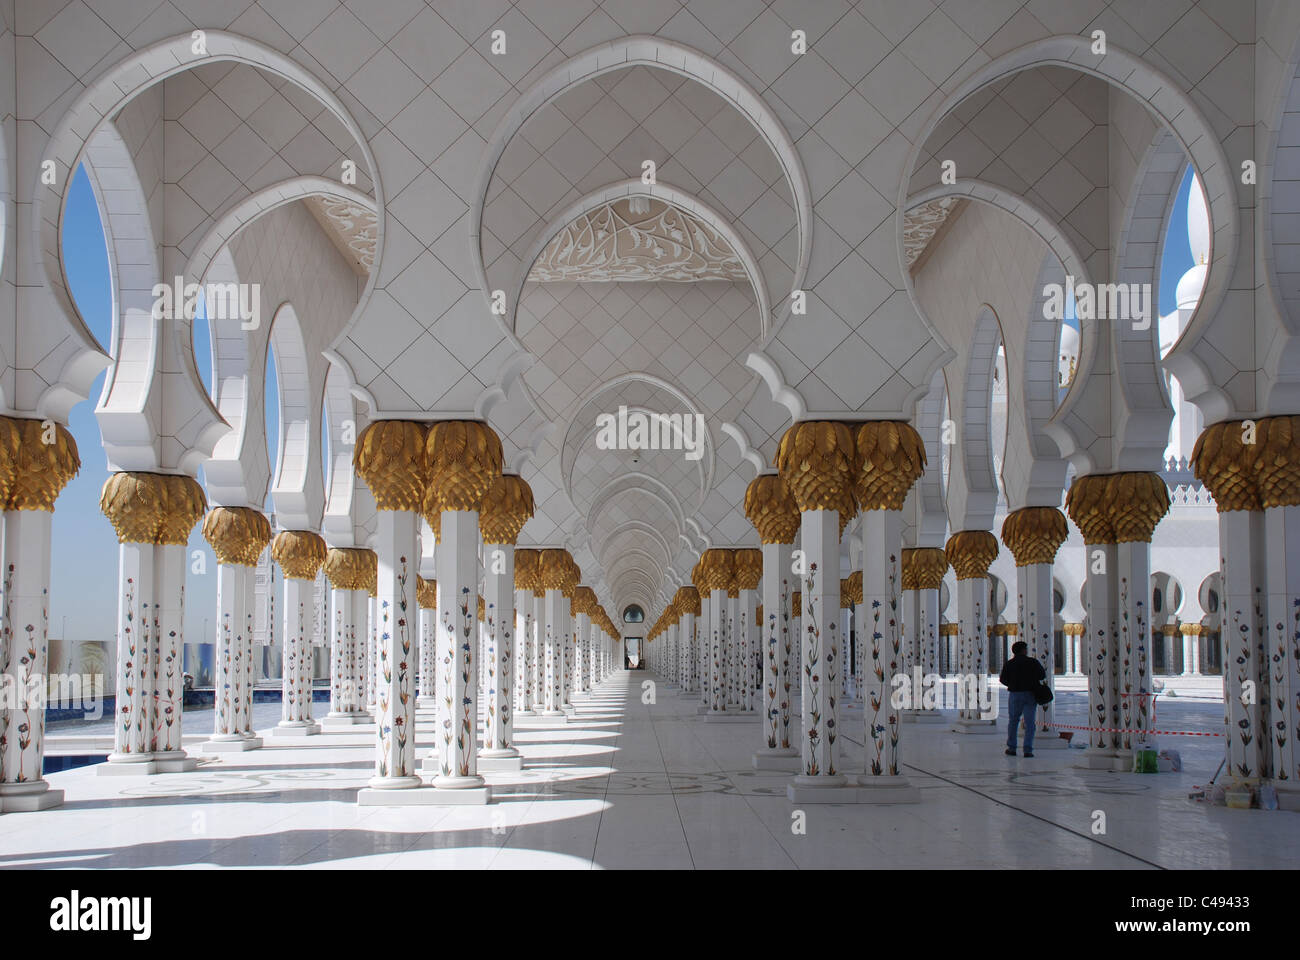 Walkway at Sheikh Zayed Mosque Abu Dhabi - Stock Image